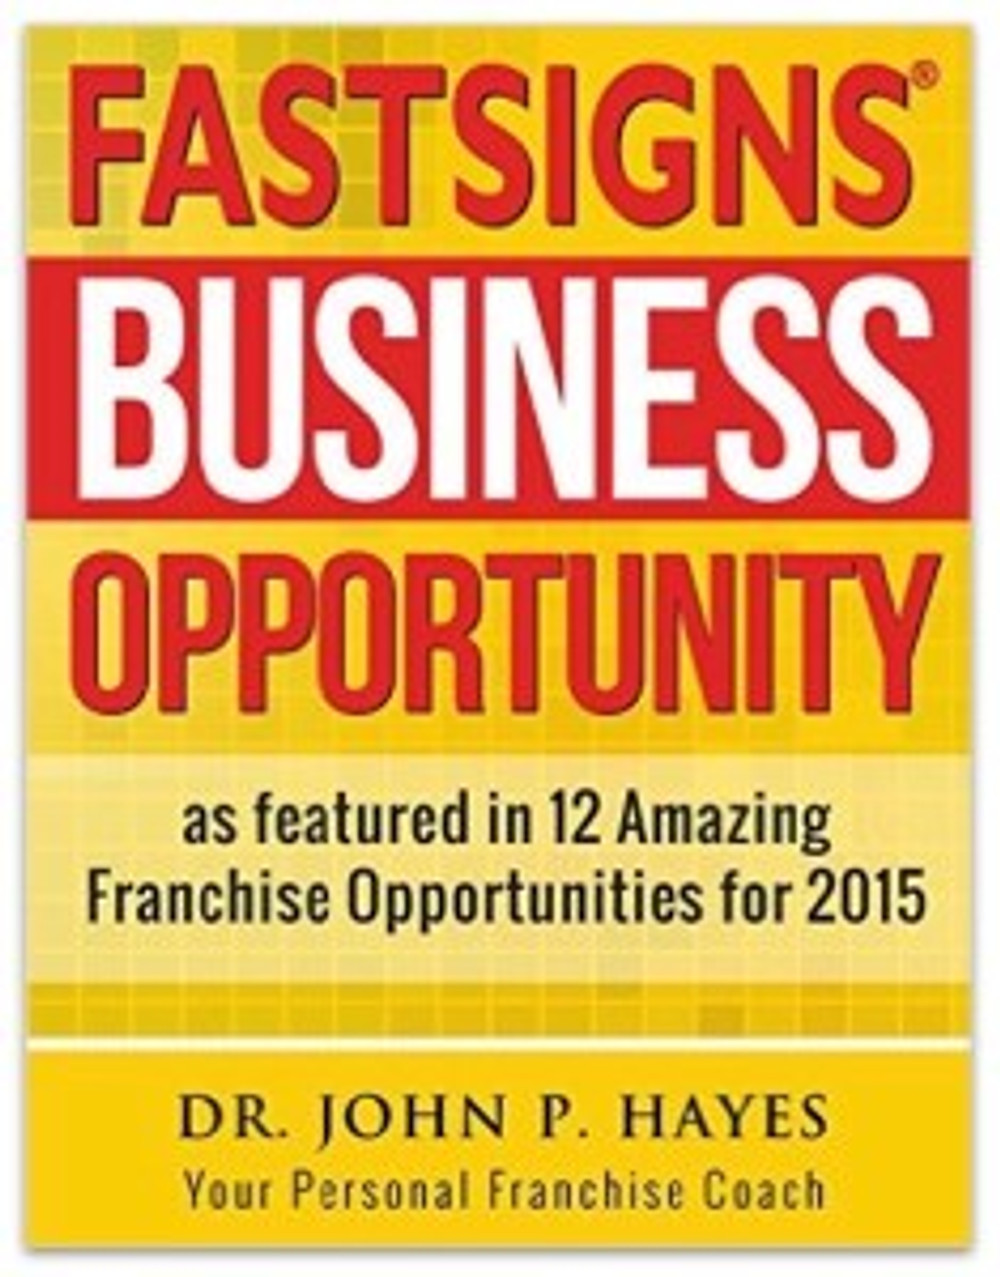 Fastsigns Business Opportunity